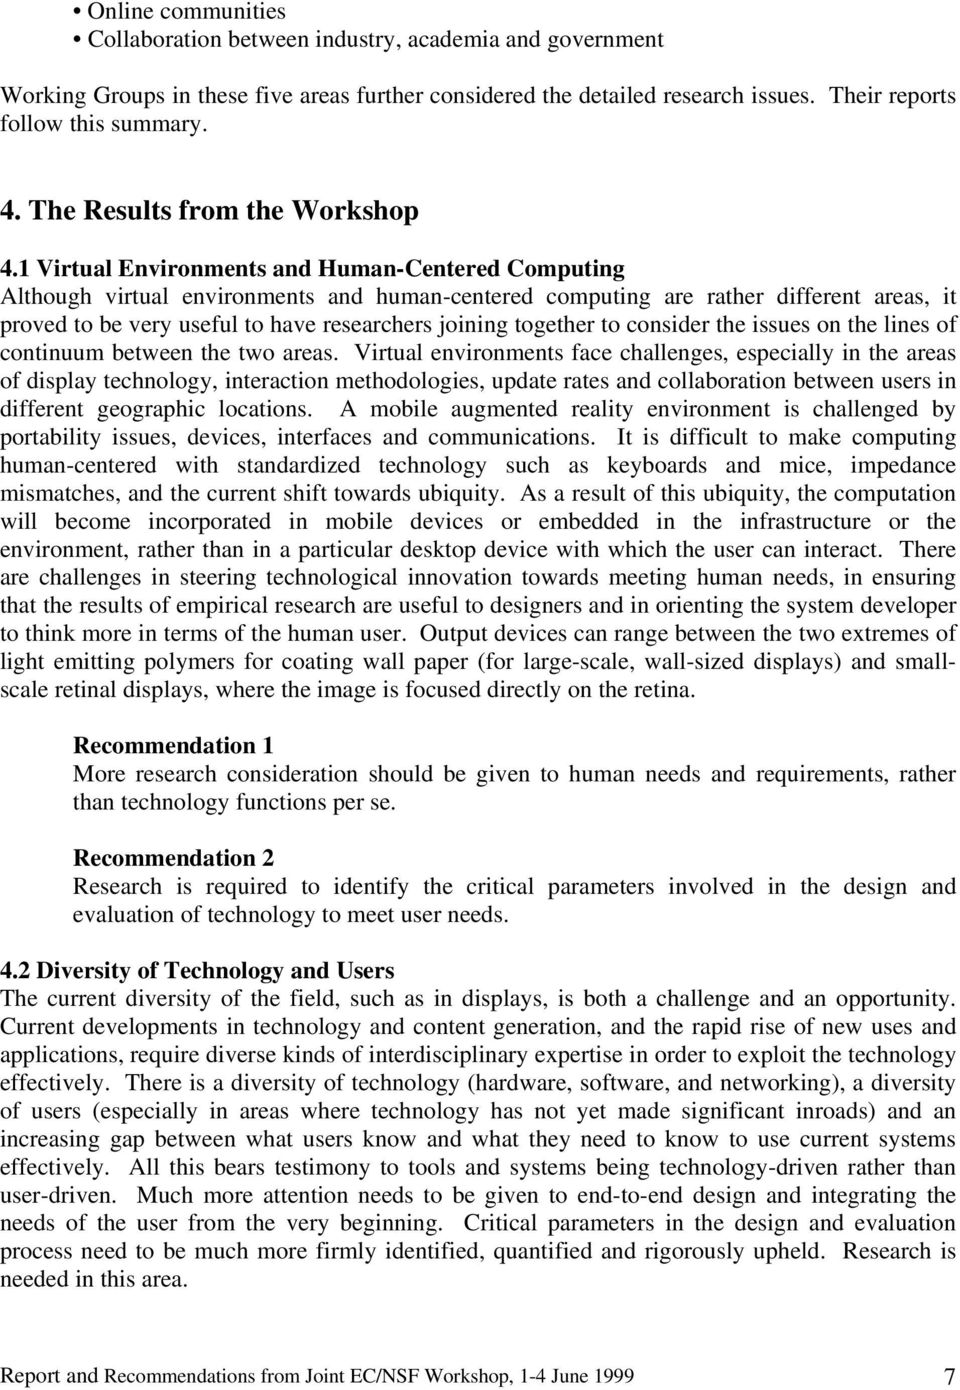 1 Virtual Environments and Human-Centered Computing Although virtual environments and human-centered computing are rather different areas, it proved to be very useful to have researchers joining